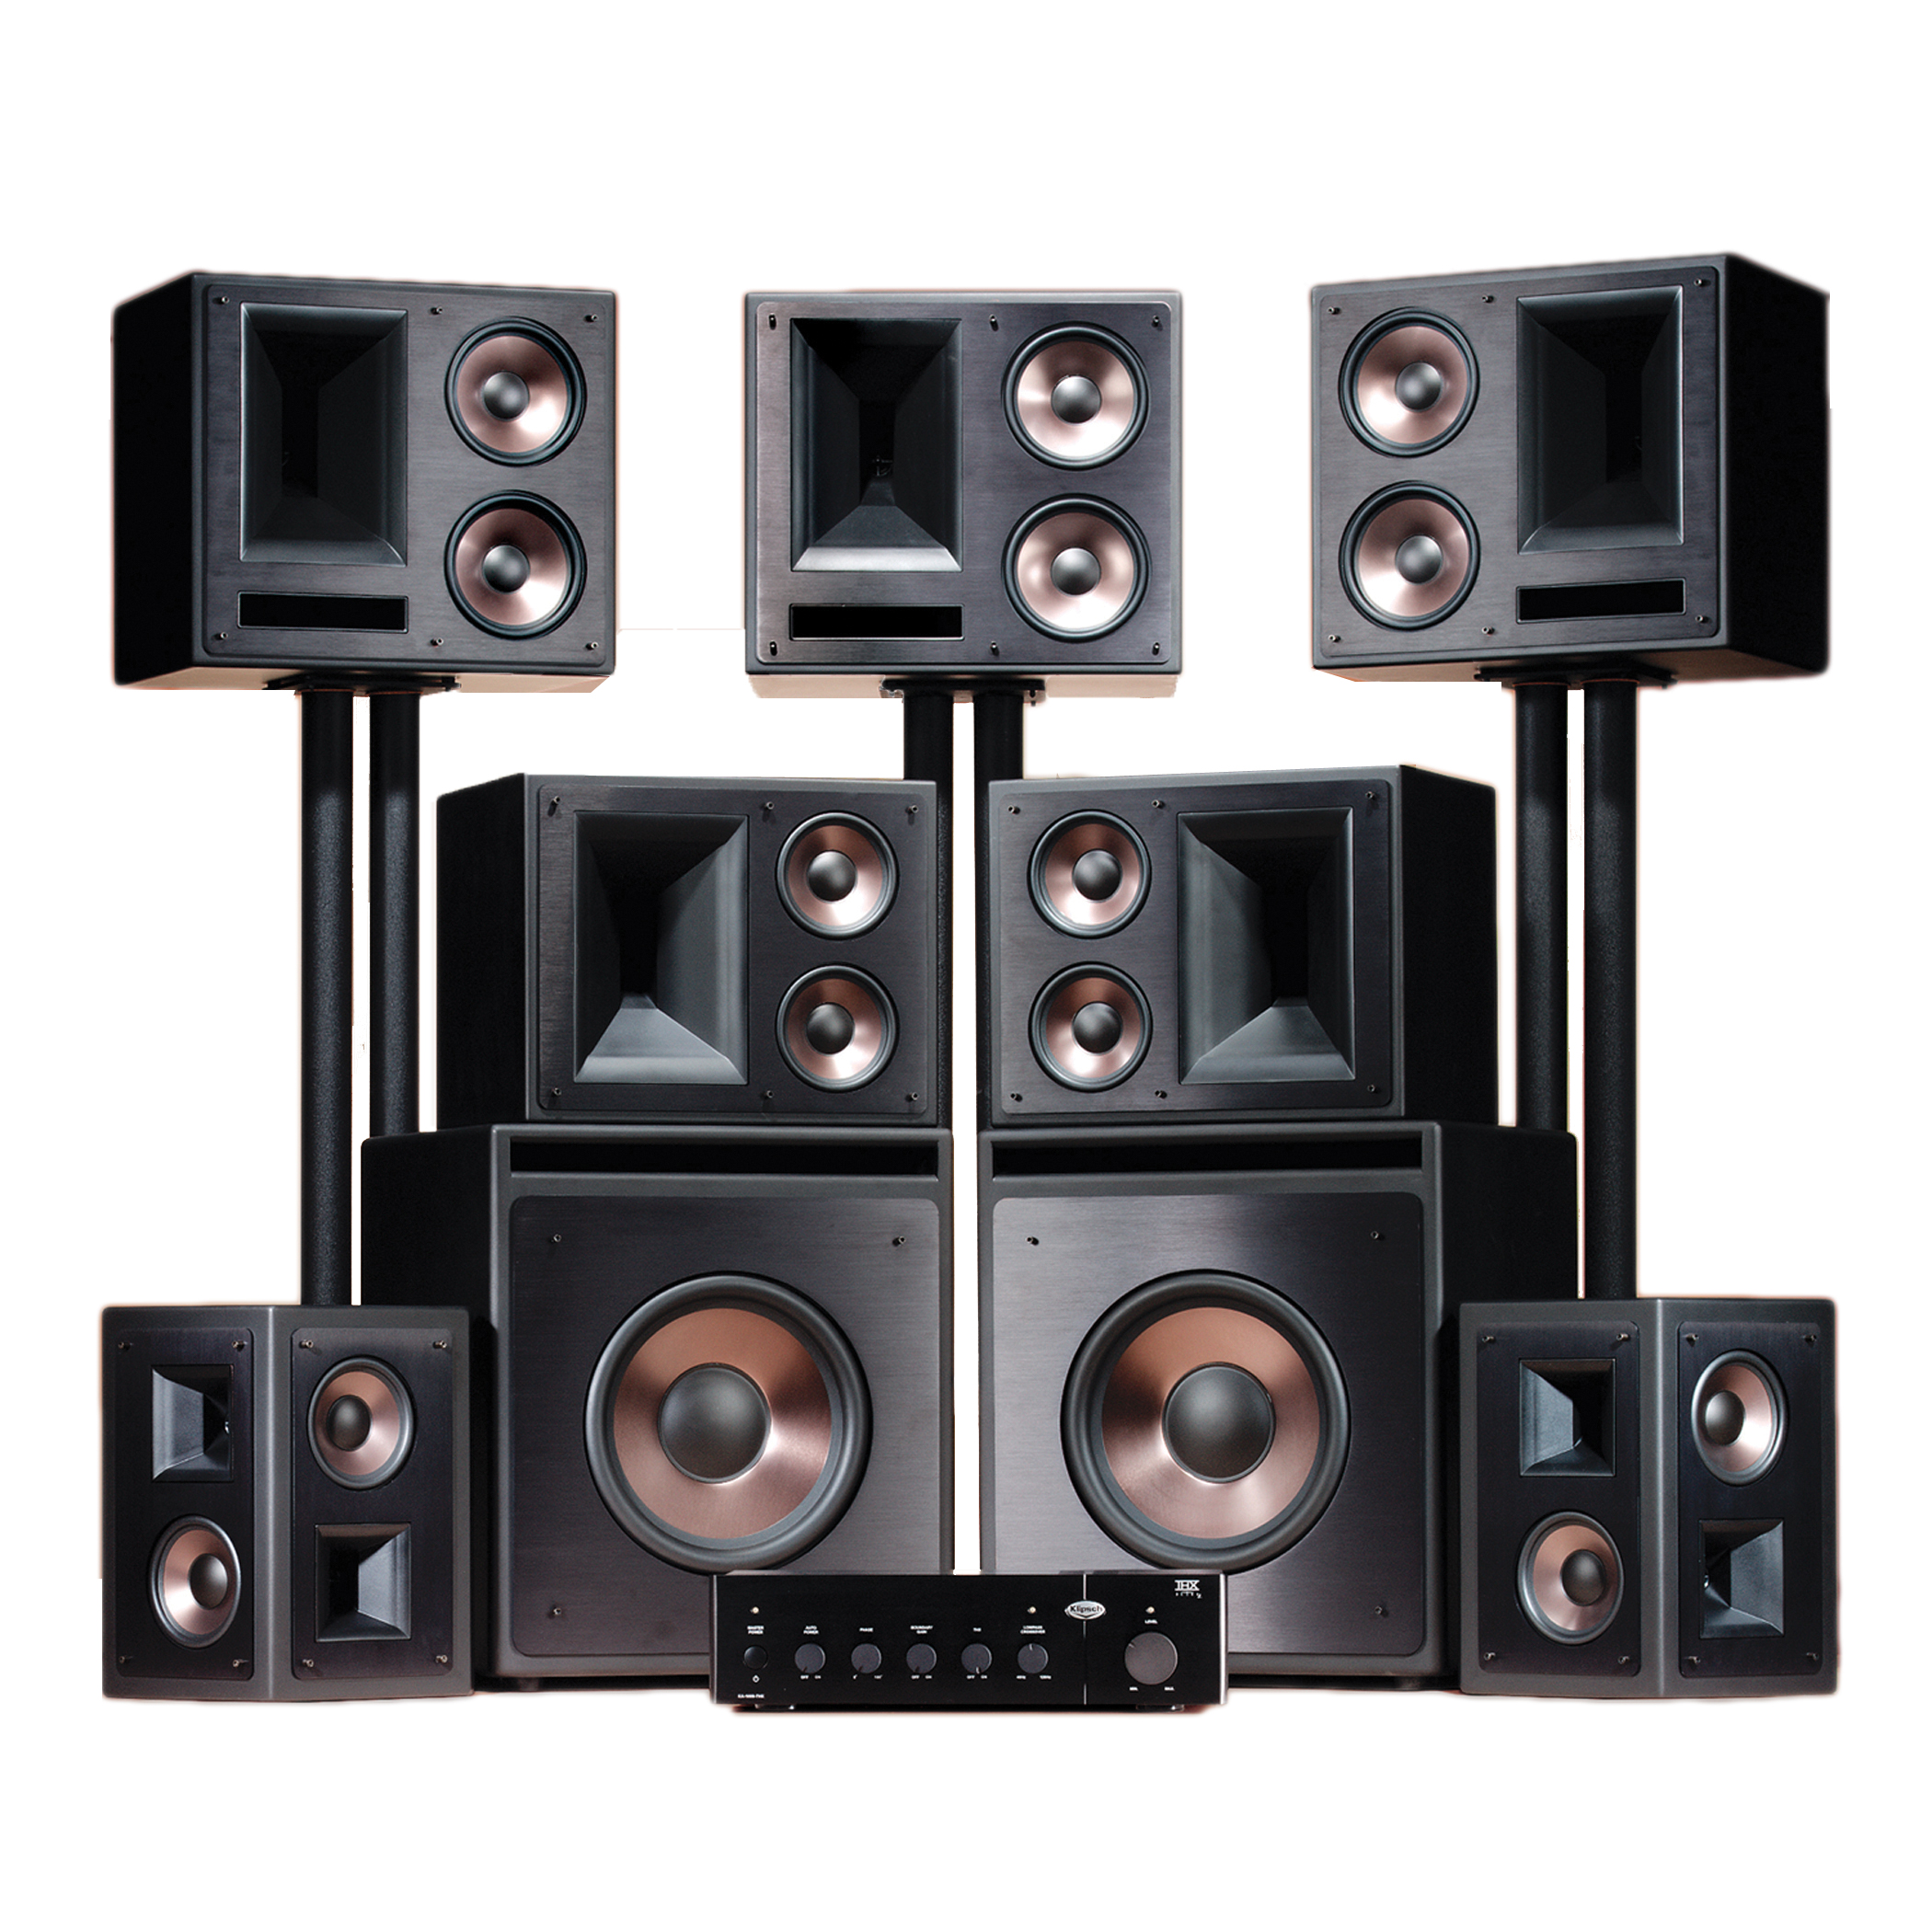 Perfect THX Ultra2 Home Theater System